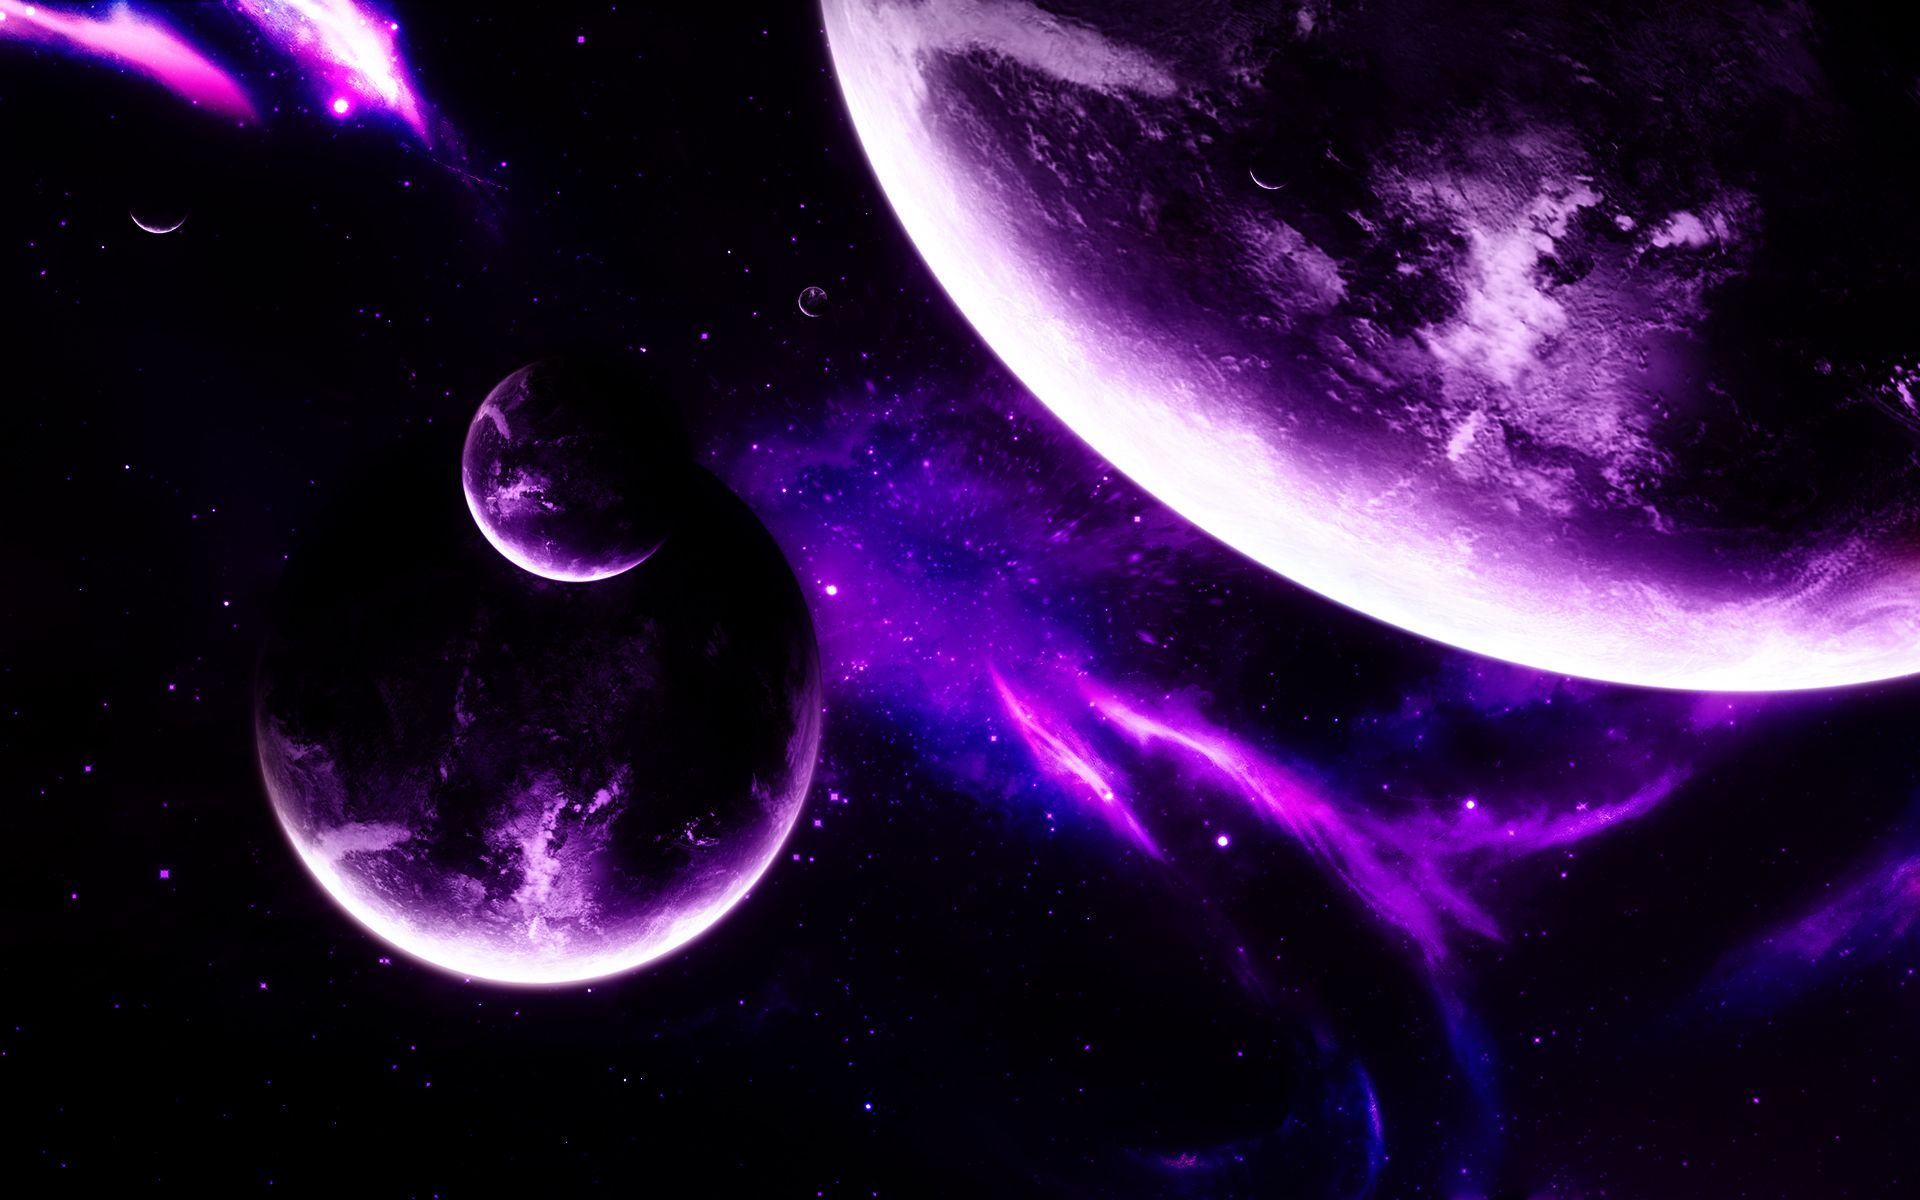 HD Purple Space Wallpaper